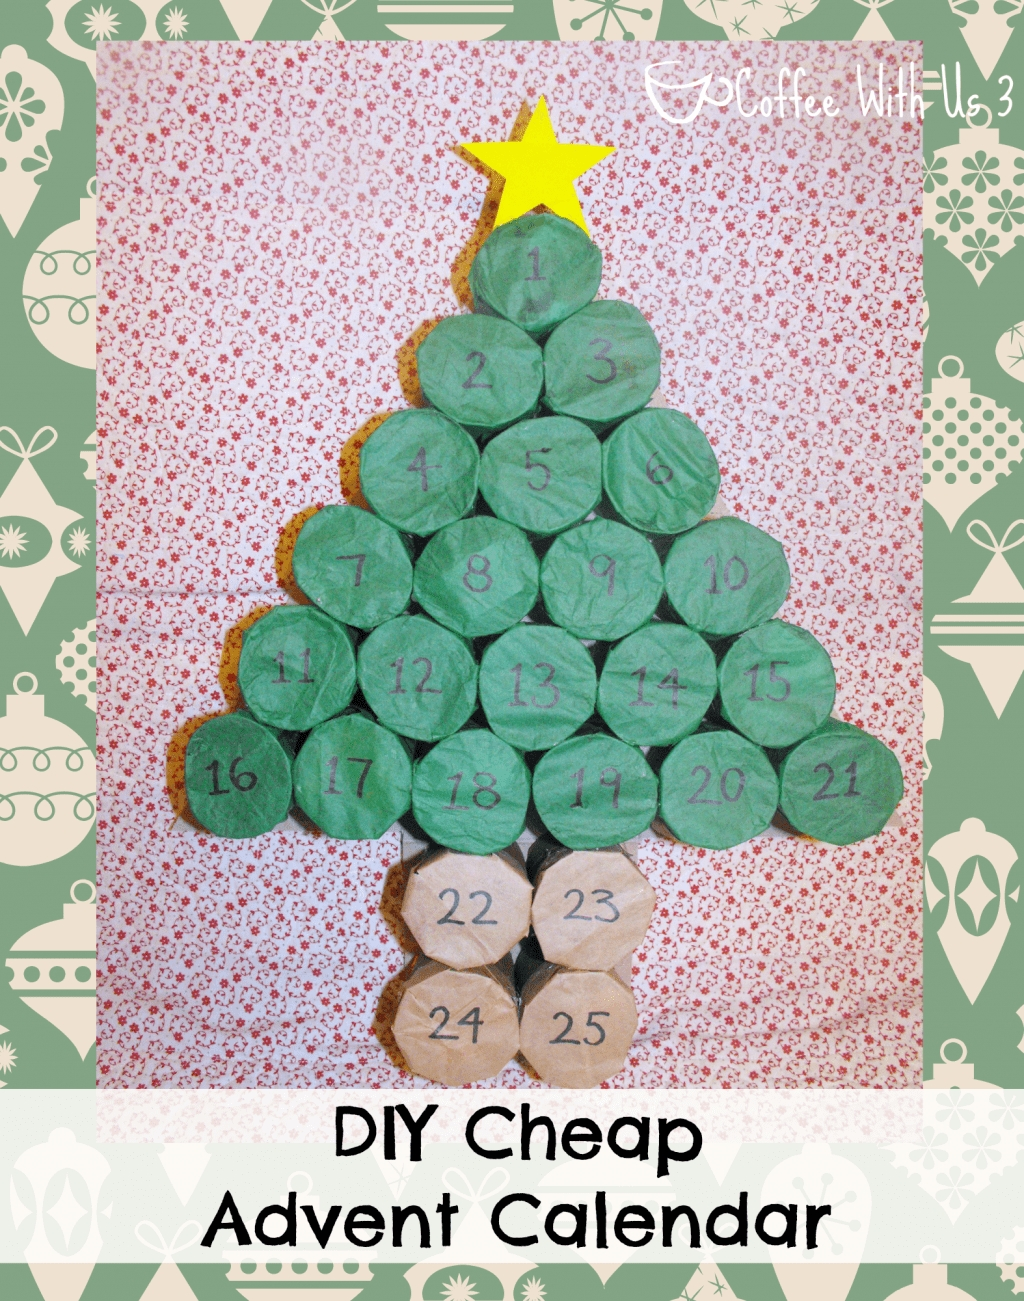 Collect Diy Advent Calendars Verses And Figures